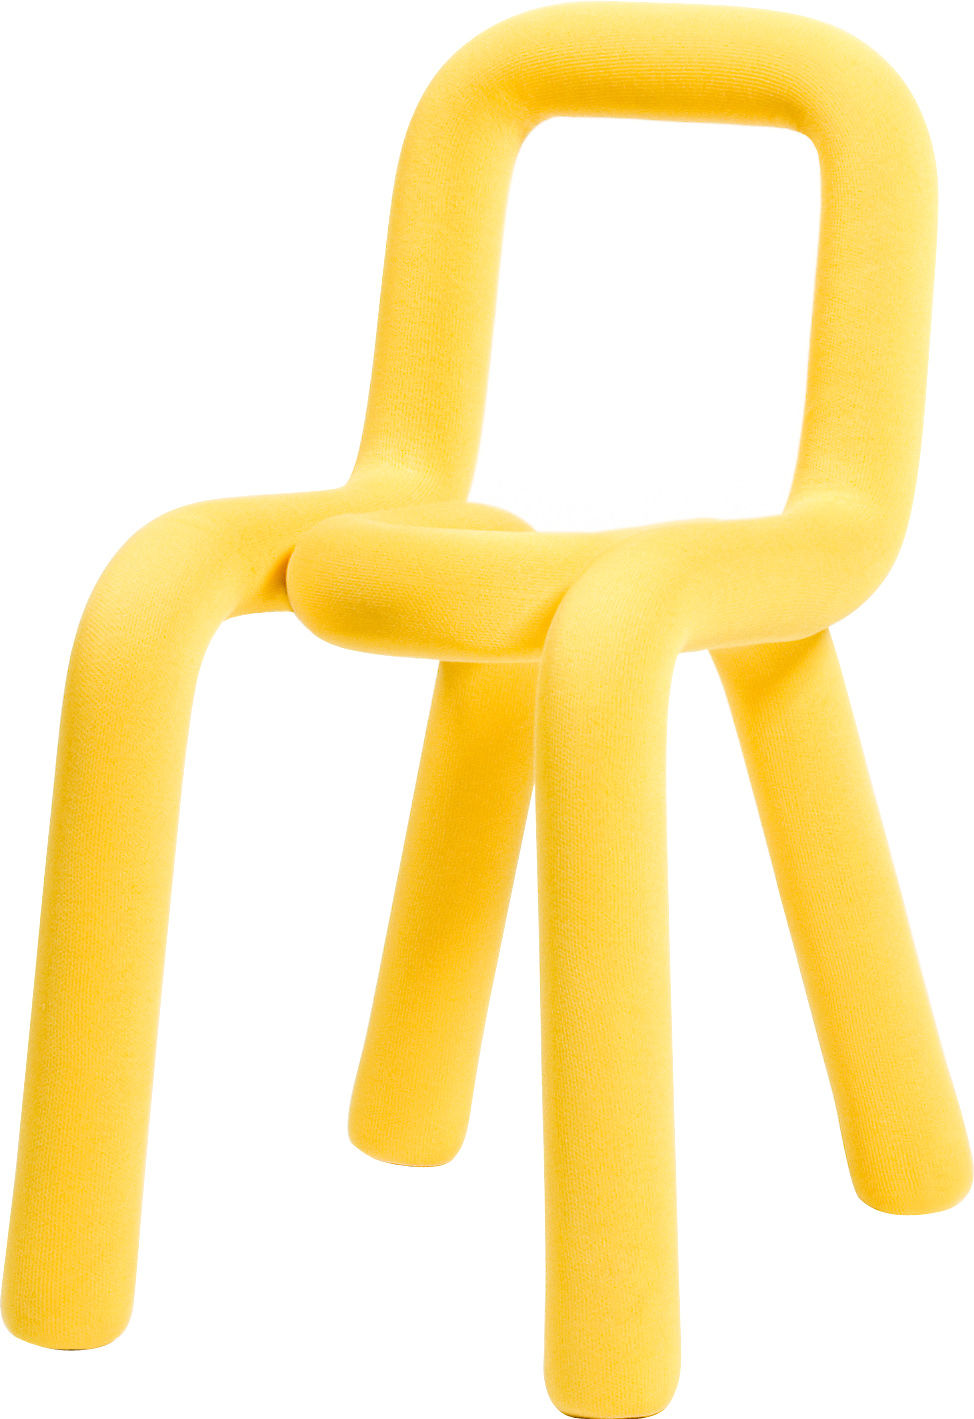 Furniture - Chairs - Chair cover - For bold chair by Moustache - Yellow - Cotton, Polyurethane